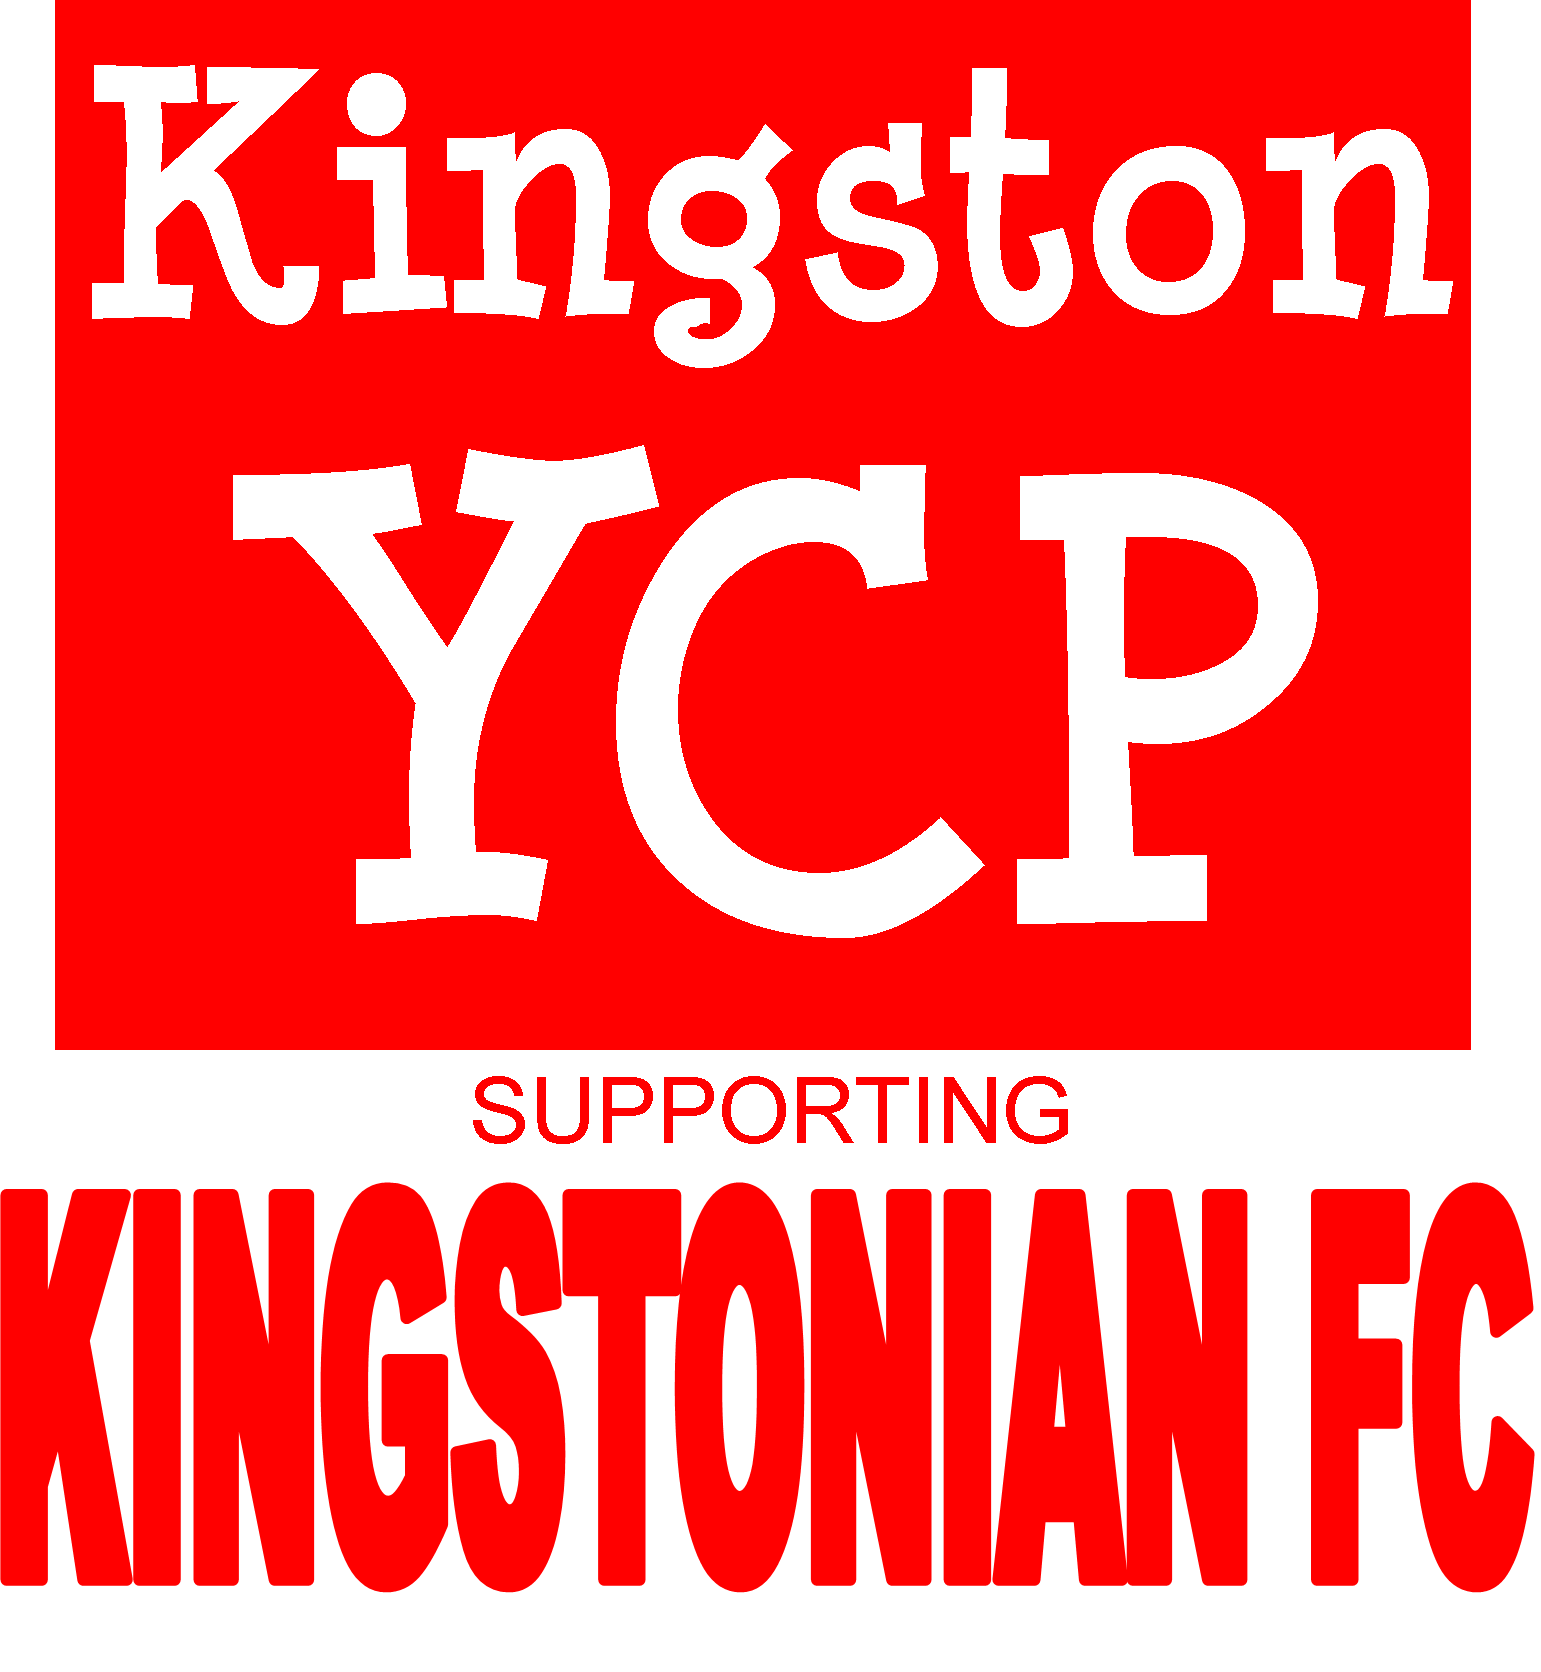 Kingstonian Young Carers